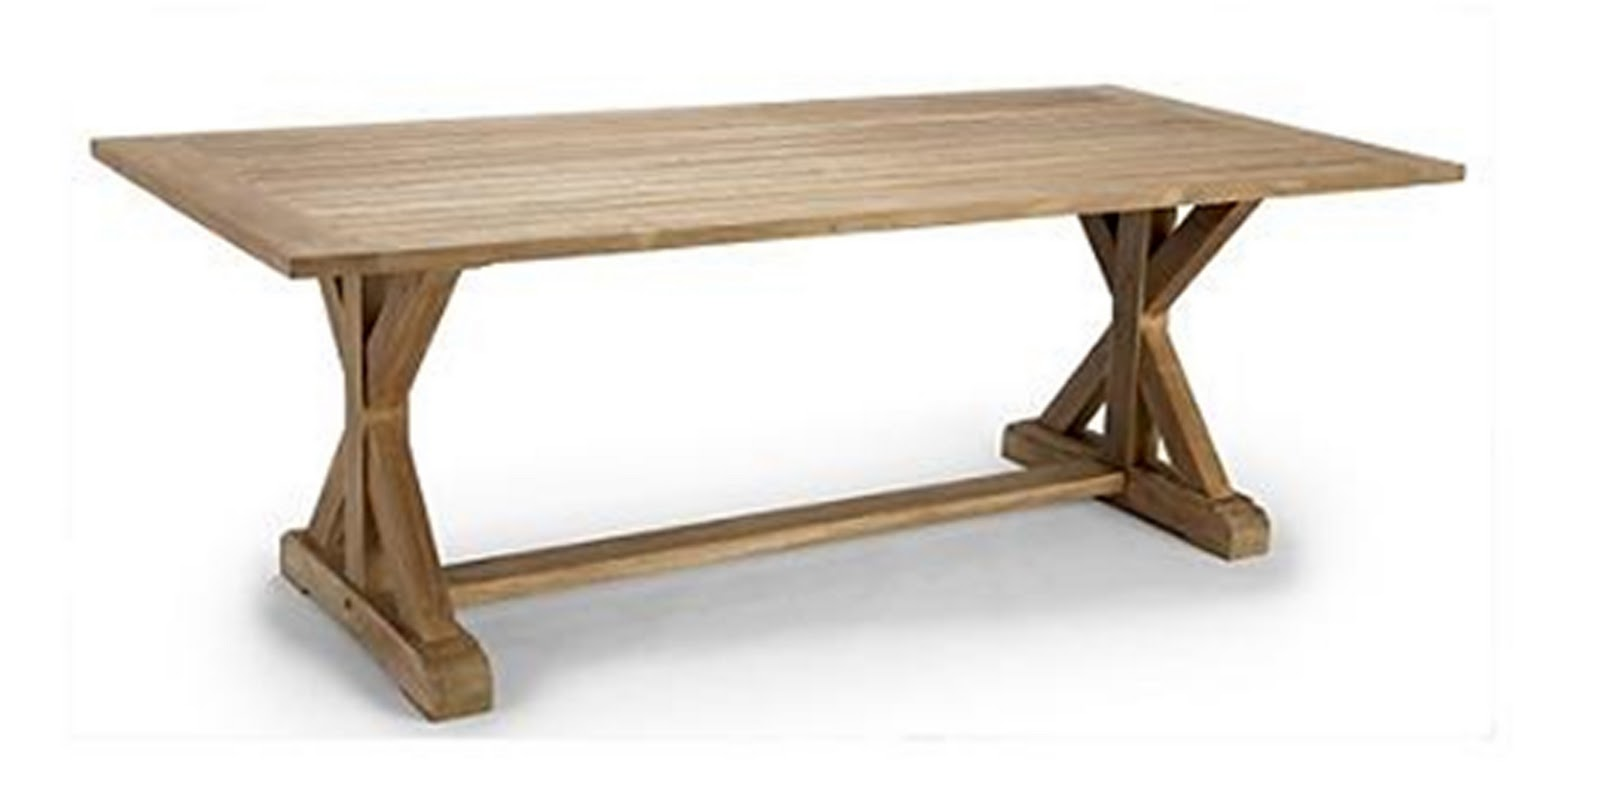 RG the shop library Campagna Outdoor Teak Dining Table